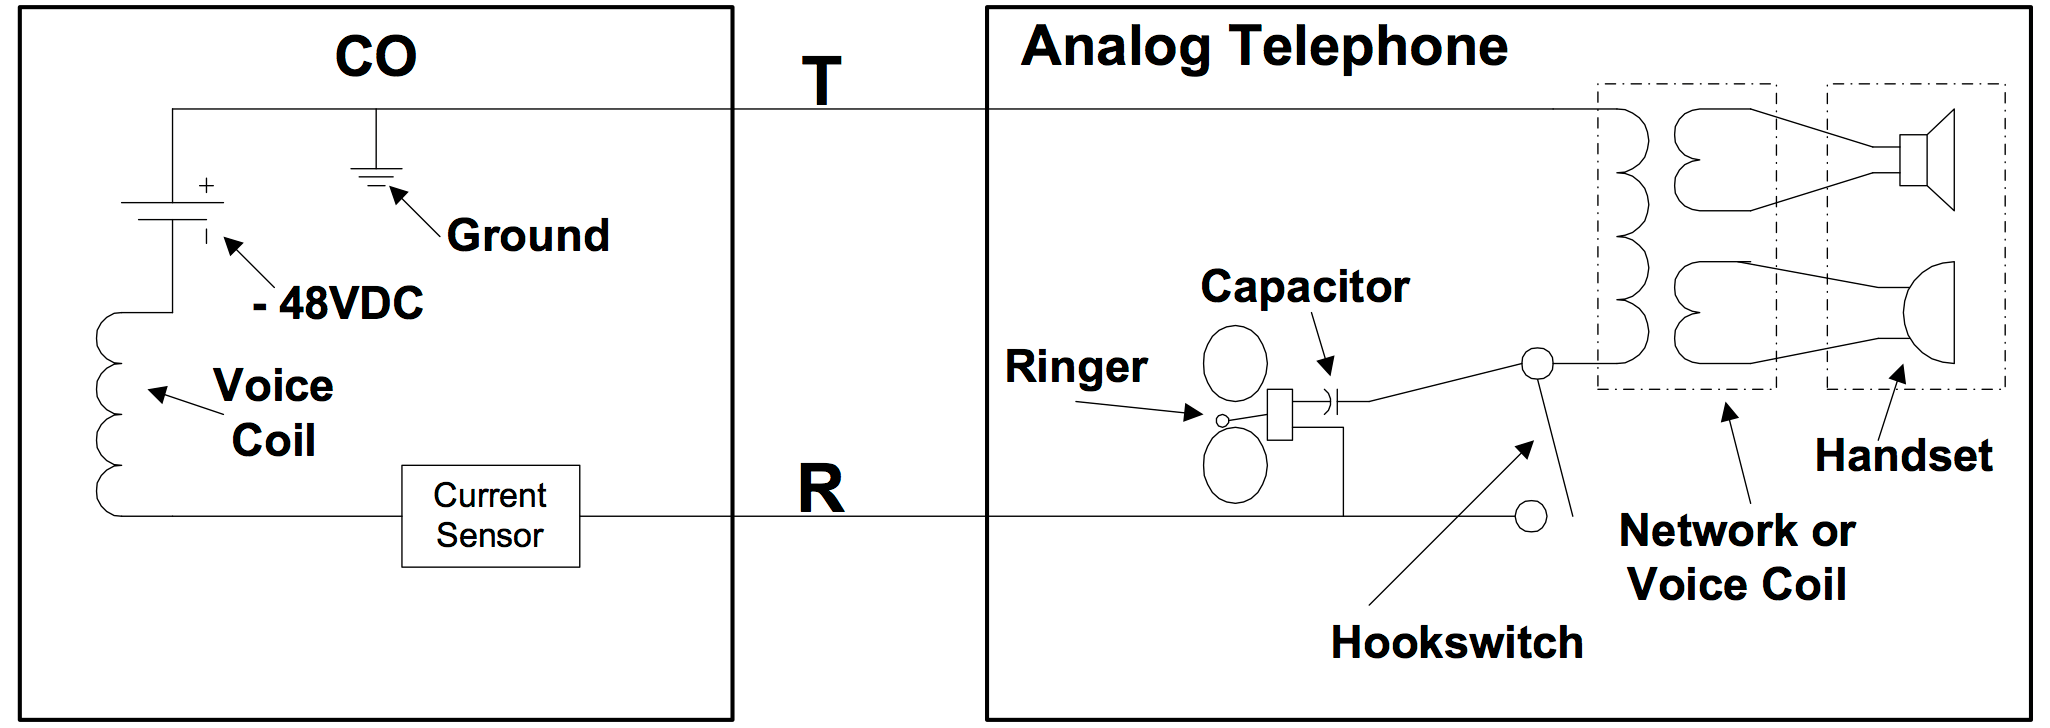 fig 5 all about analog lines Residential Telephone Wiring Diagram at bakdesigns.co